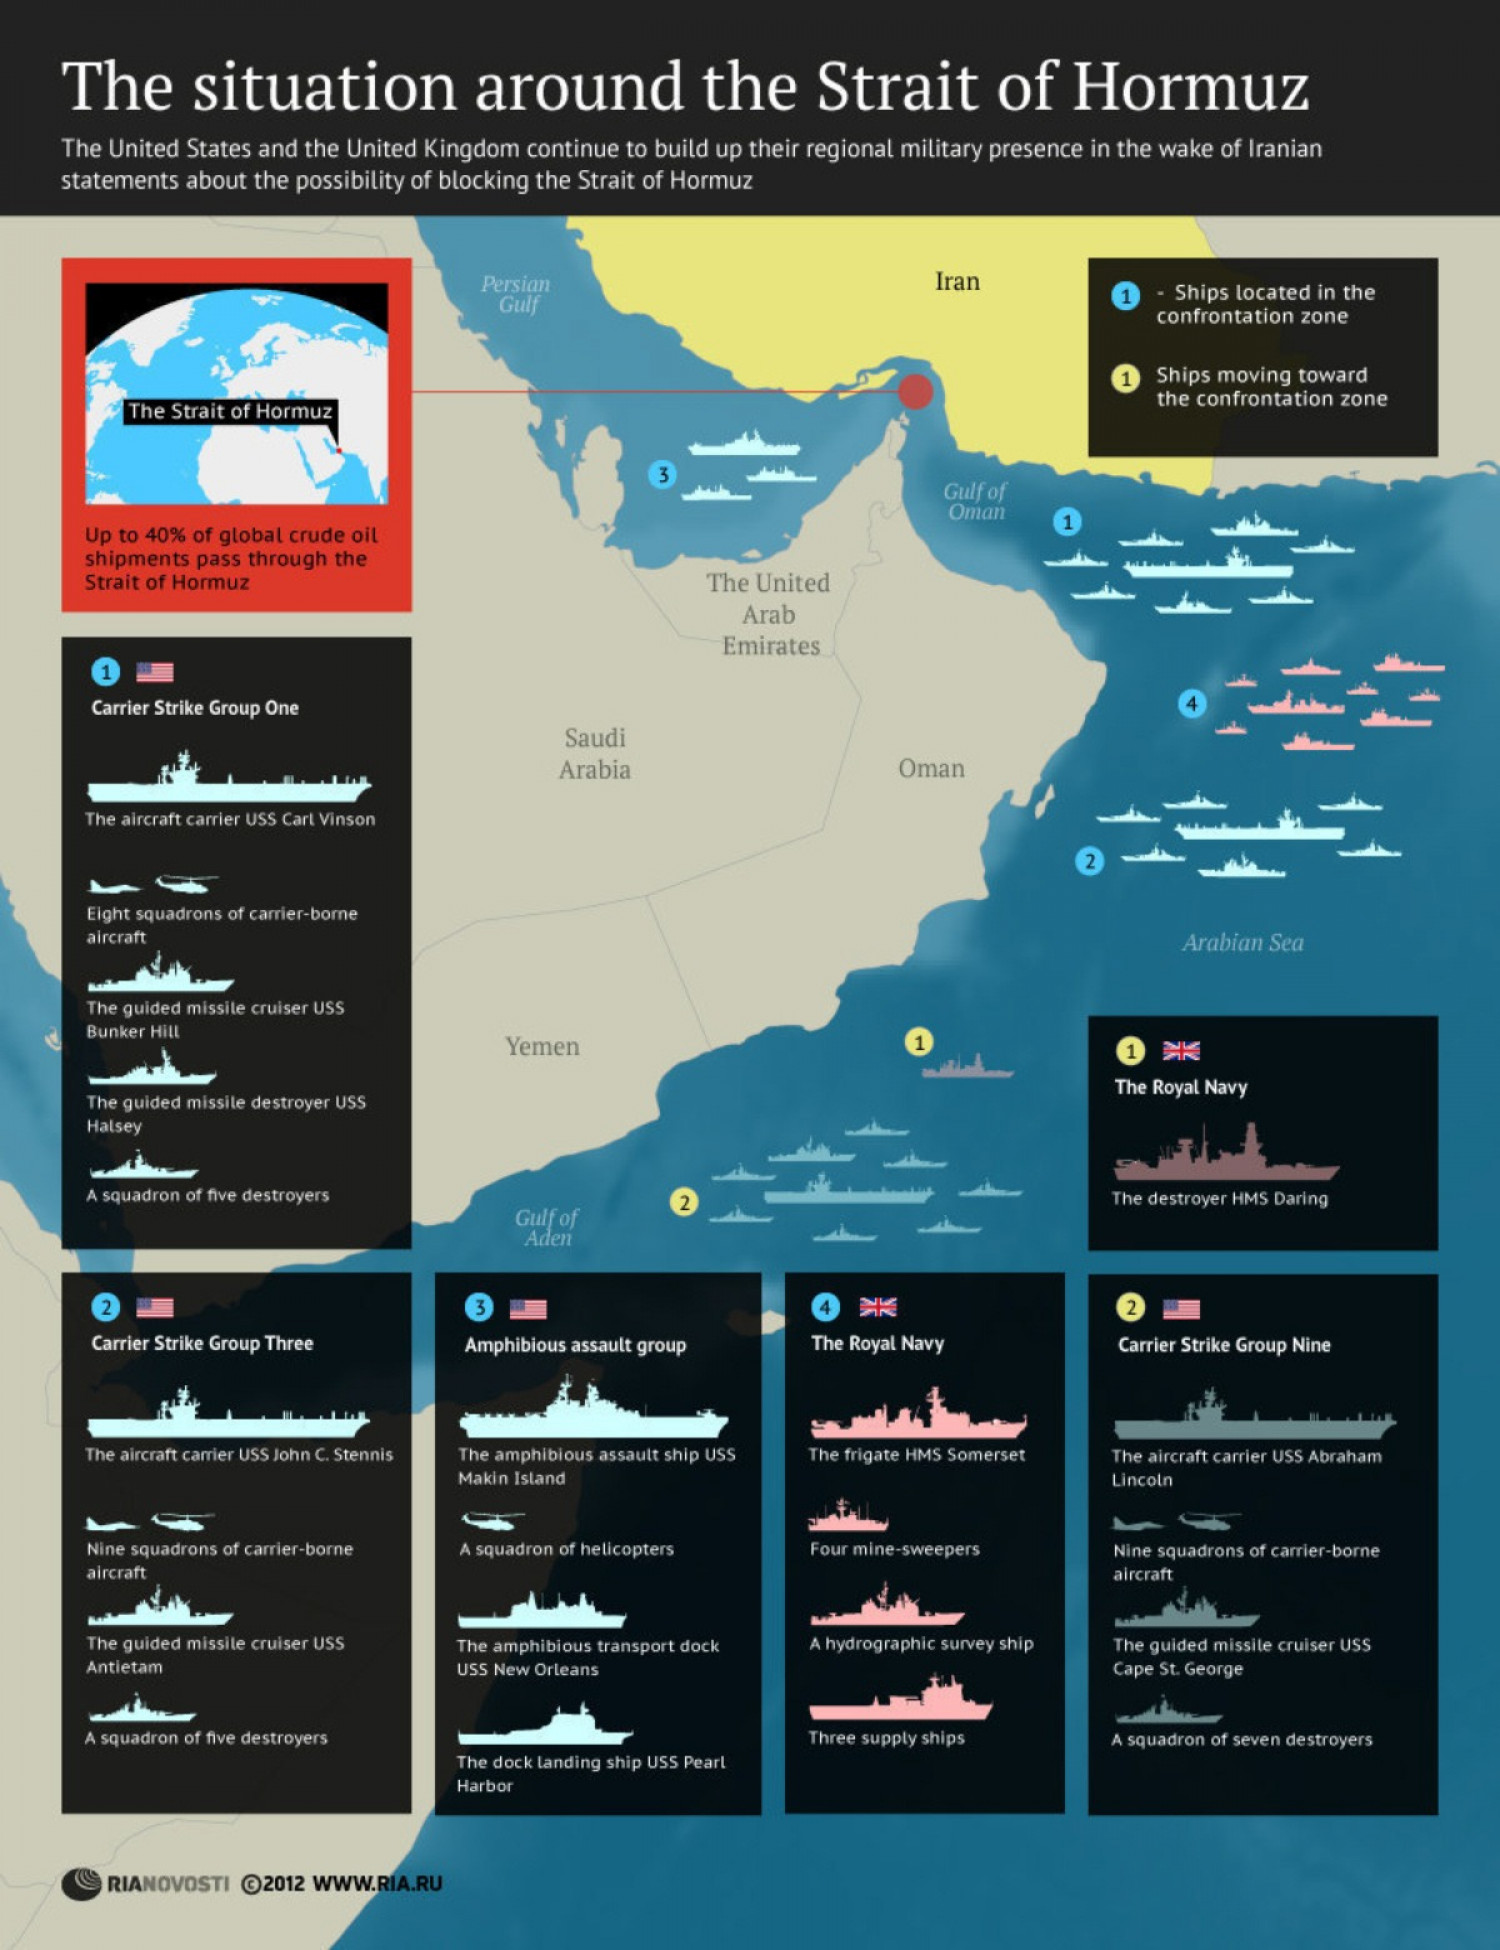 The situation around the Strait of Hormuz Infographic